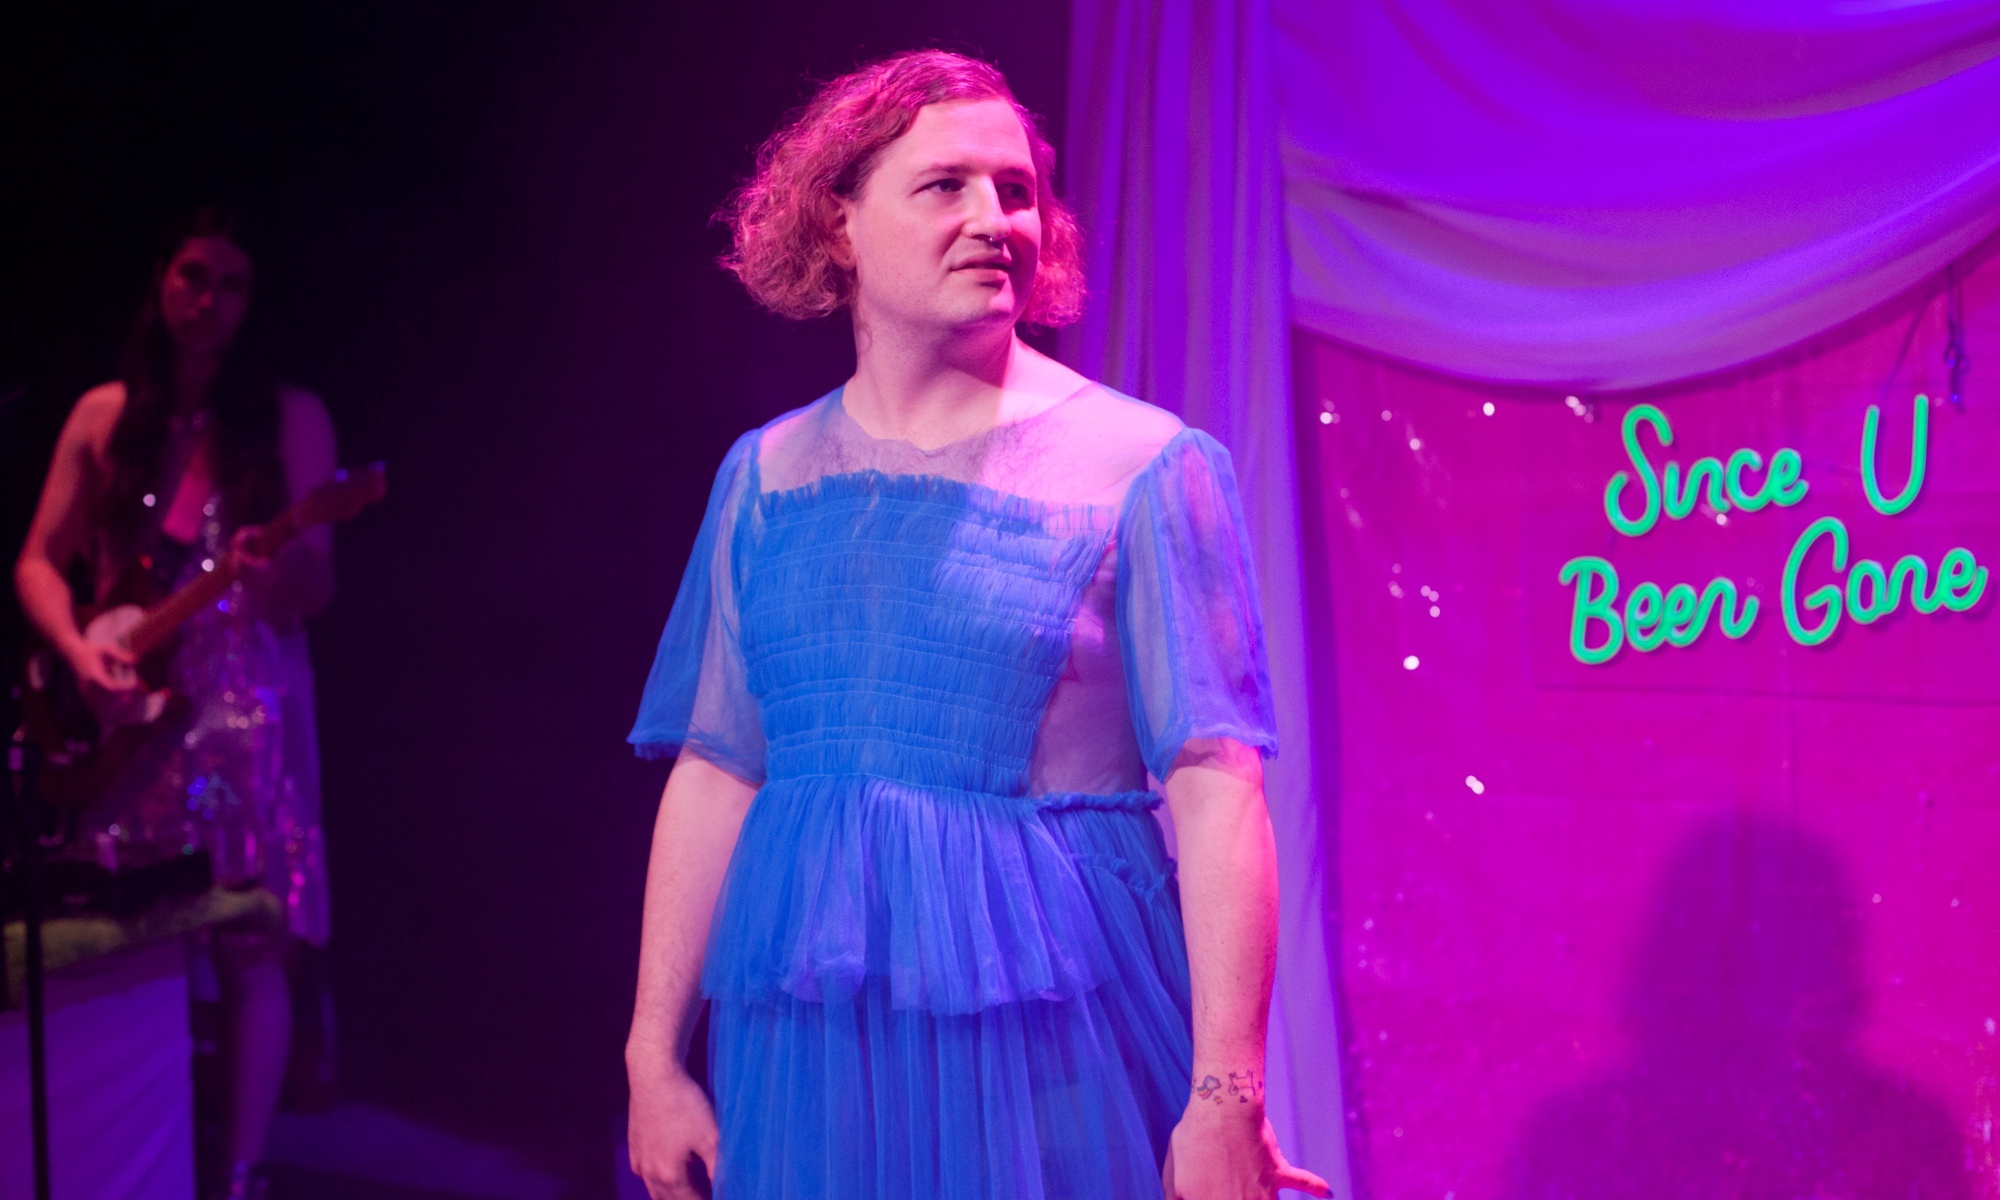 A person in a blue skirt stares at something to their left. Behind them are pink curtains and a wall with the words 'Since U Been Gone' in a green neon sign.